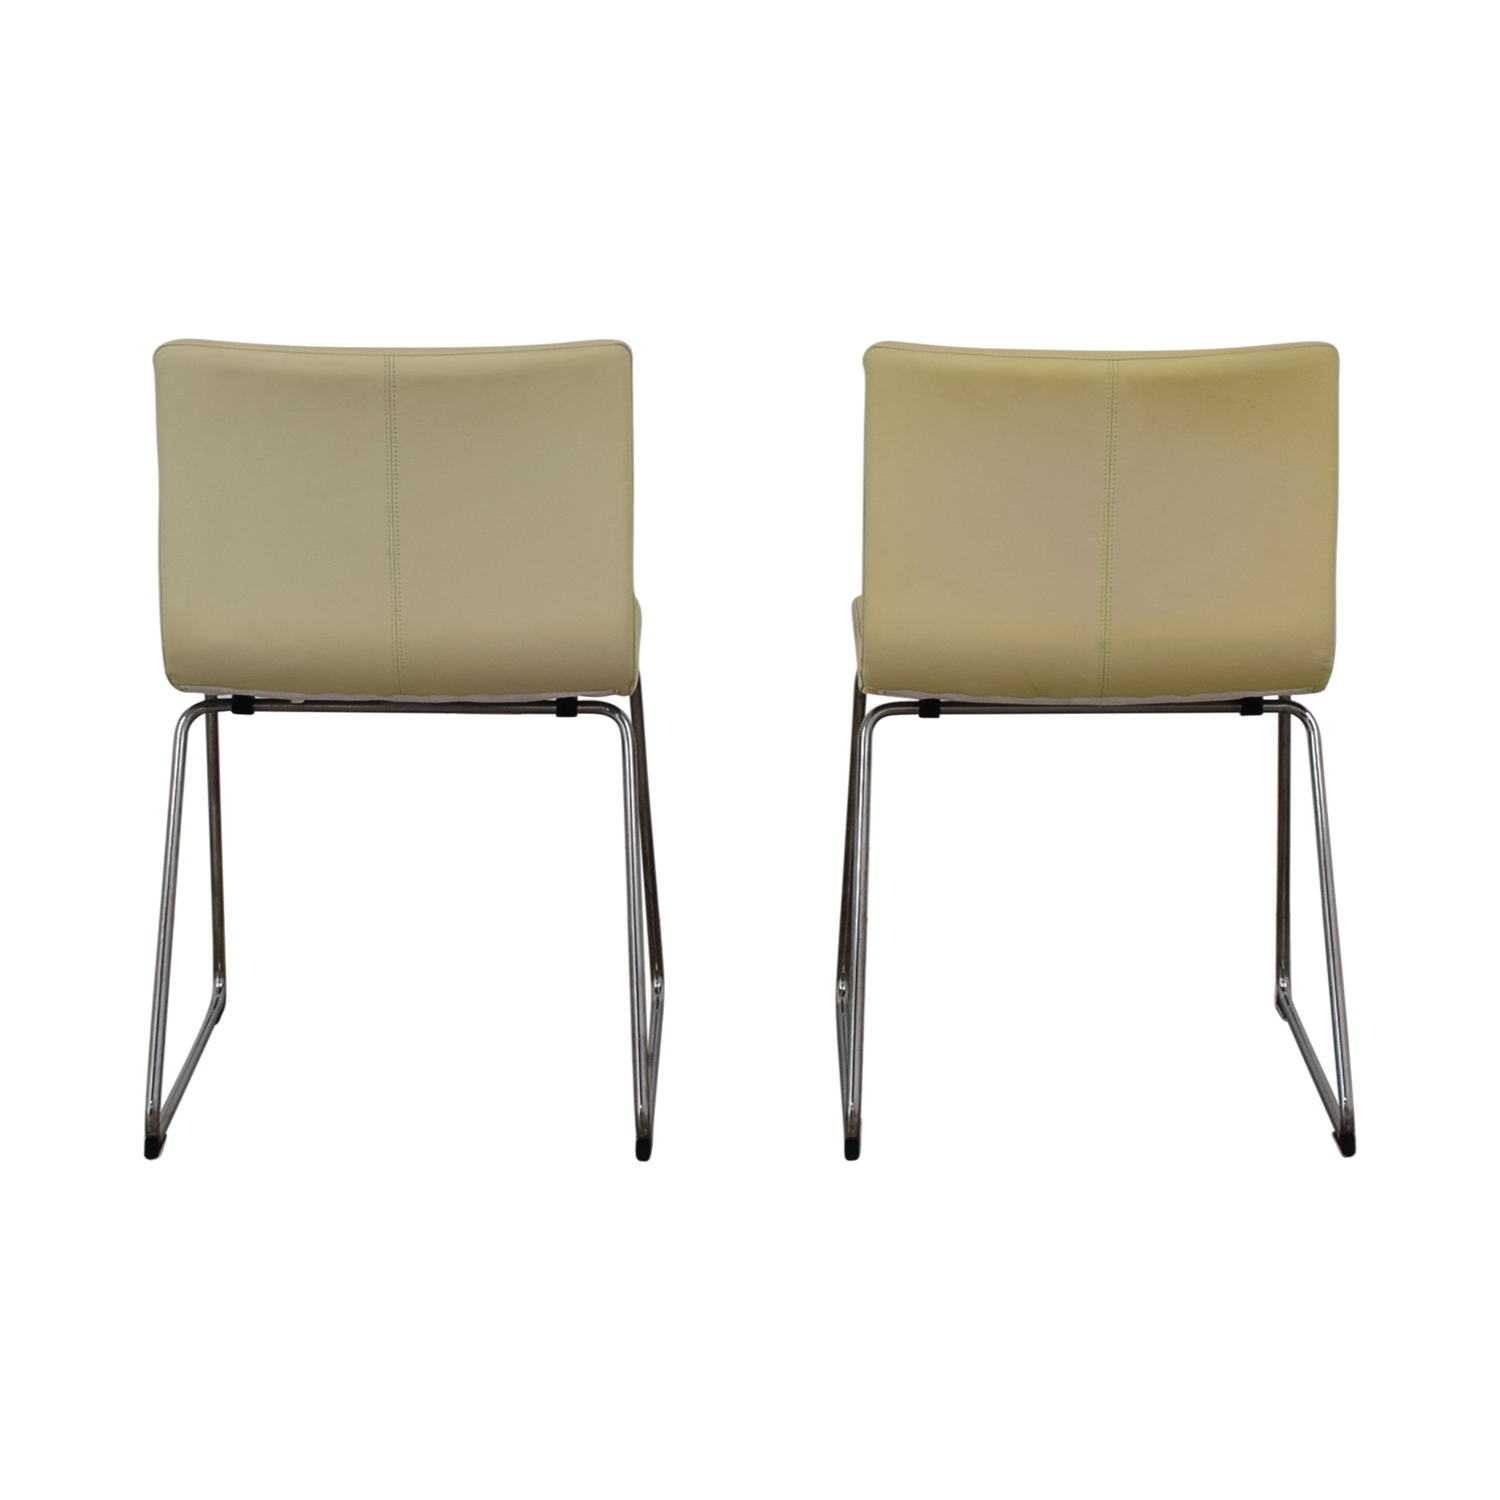 Dining Chairs For Sale Ikea: IKEA IKEA Bernhard Leather Dining Chairs / Chairs